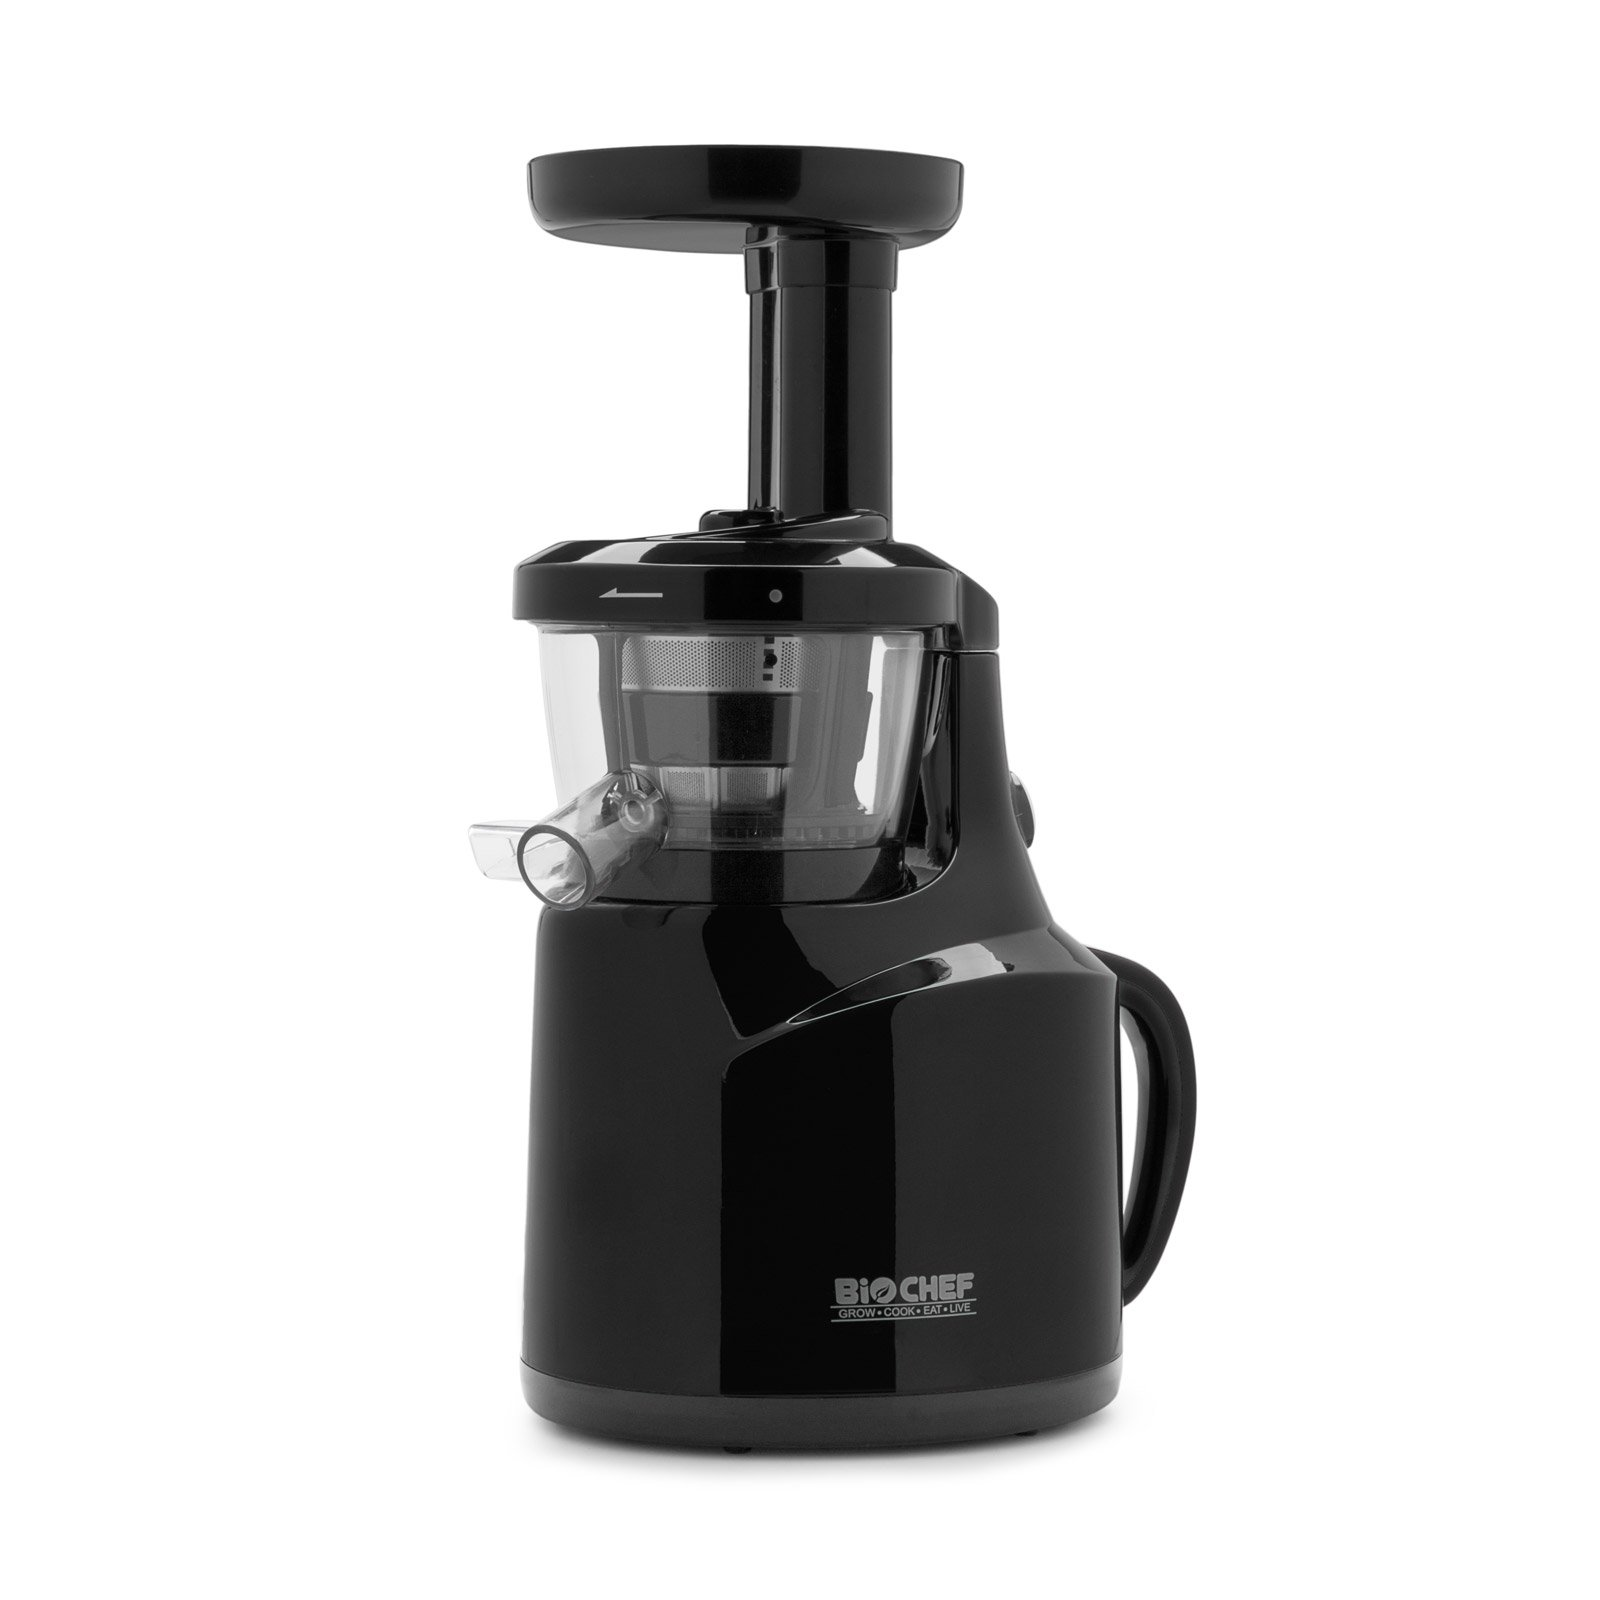 Slow Juicer Biochef : BioChef Slow Juicer Black Black eBay